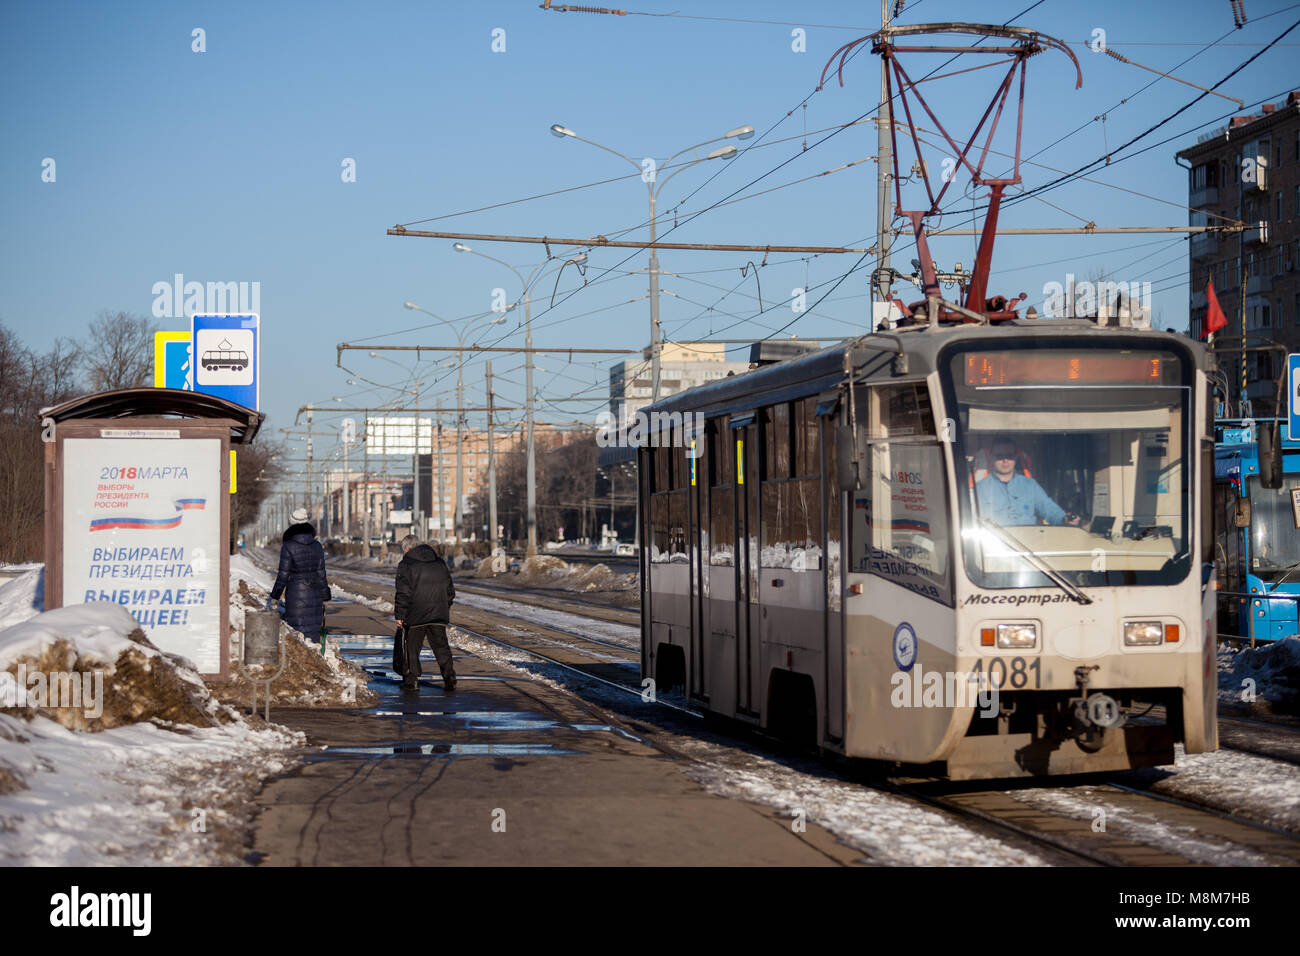 MOSCOW, RUSSIA - MARCH 18, 2018: A poster at a tram stop calling for voting for the election of the President of - Stock Image